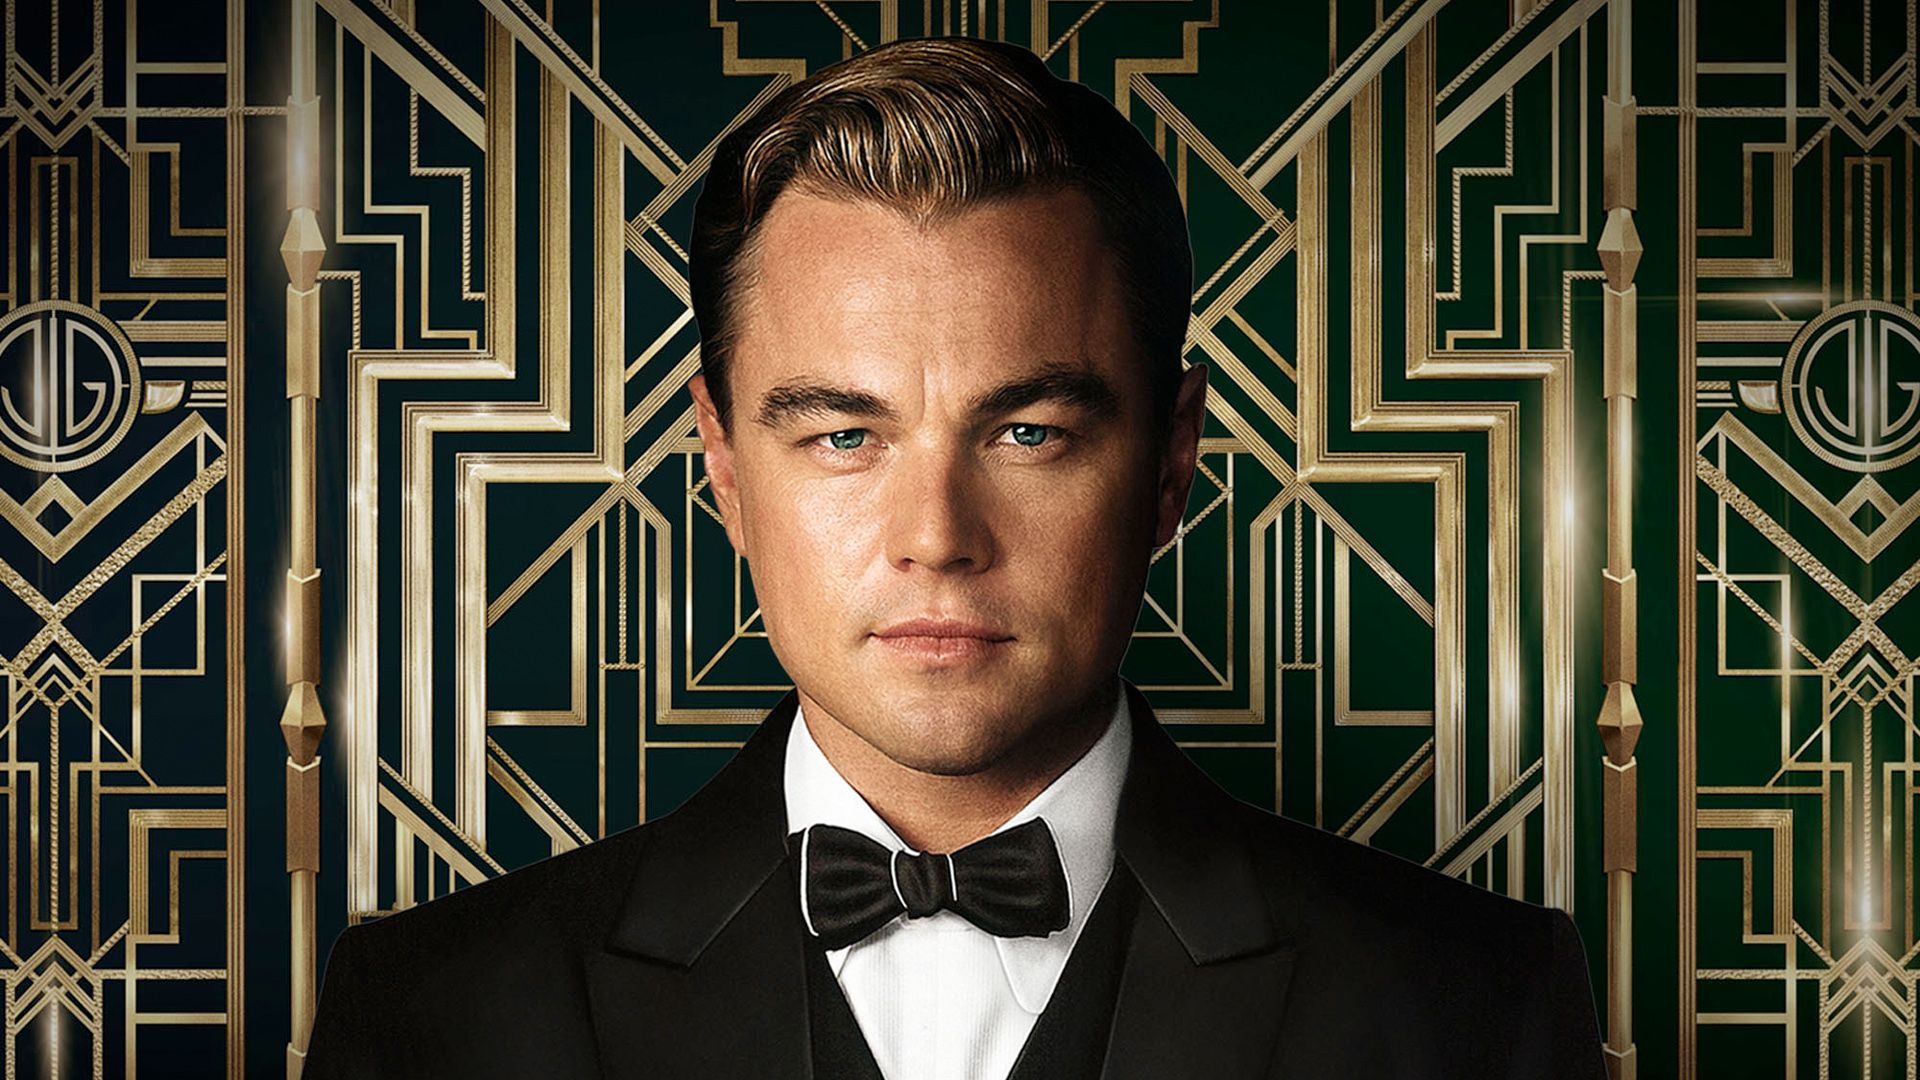 the great gatsby and the tainted The great gatsby: materialism the quote material without being real shows the emptiness of an existence with the realization of a tainted ideal fittingly, this quote from nick is placed after daisy leaves gatsby.